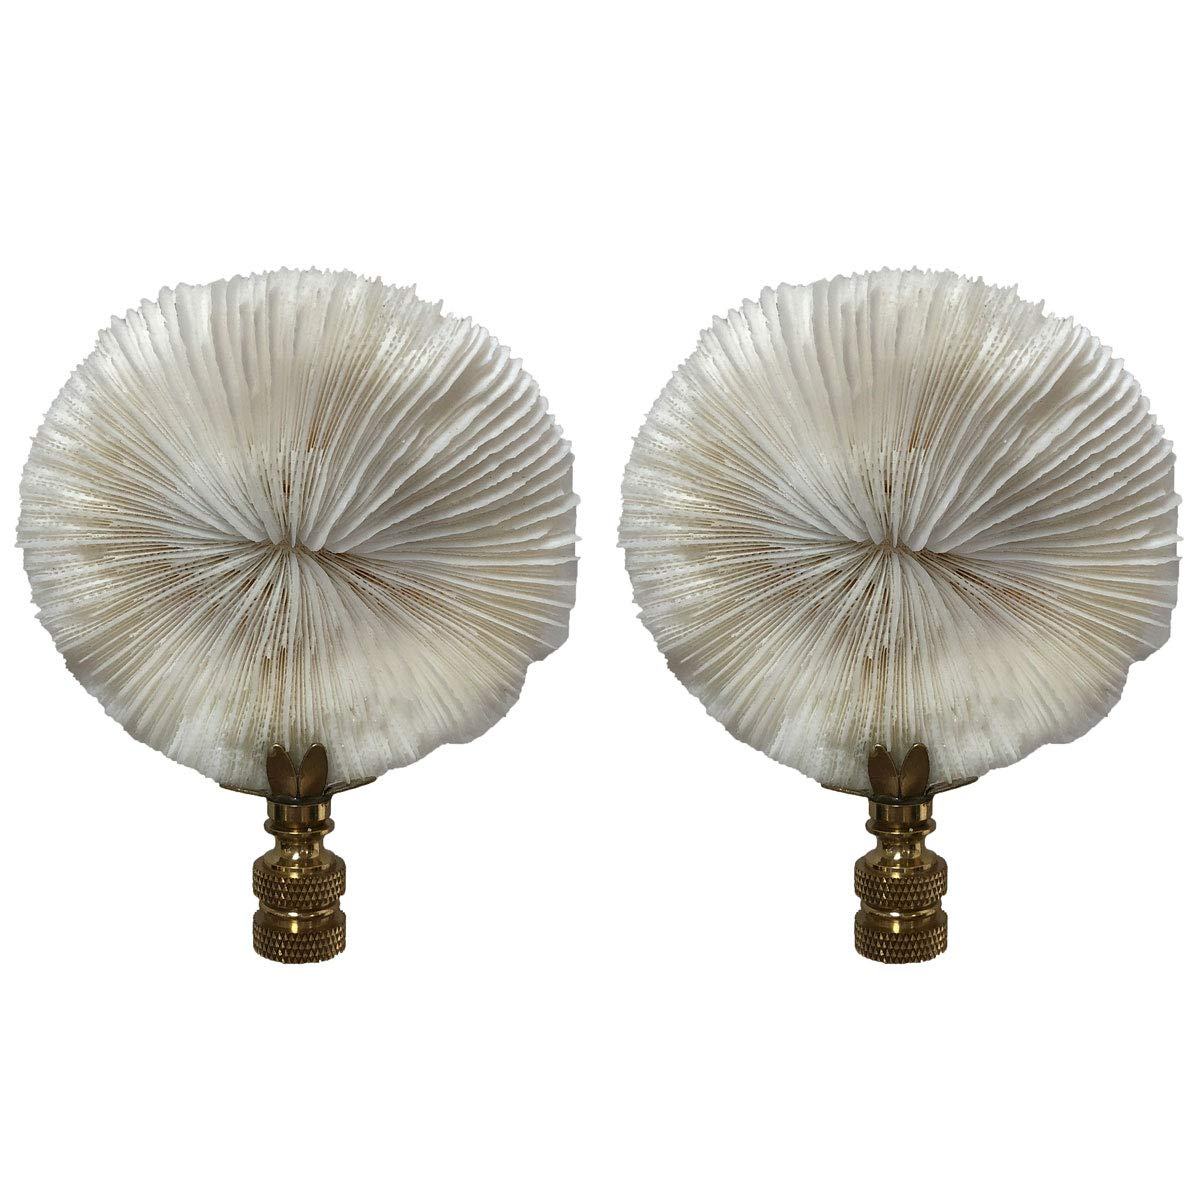 Royal Designs F-5069PB-2 Natural Coral Lamp Finial, White Mushroom Coral on Polished Brass Base, Set of 2